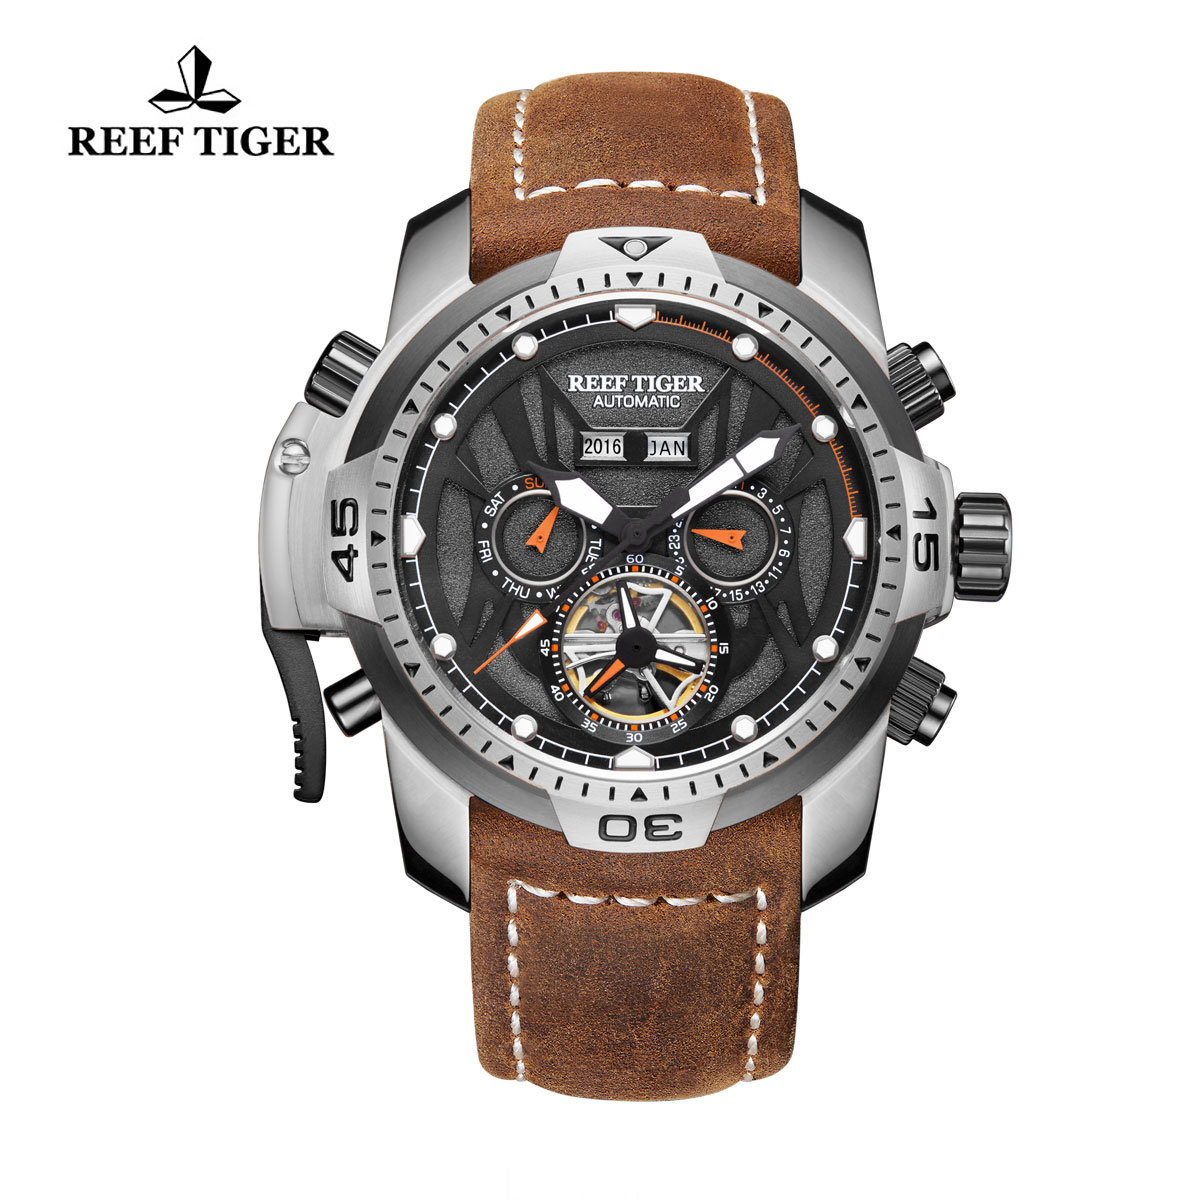 Reef Tiger Transformer Sport Watches Complicated Watch Steel Case Brown Leather RGA3532-YBRO